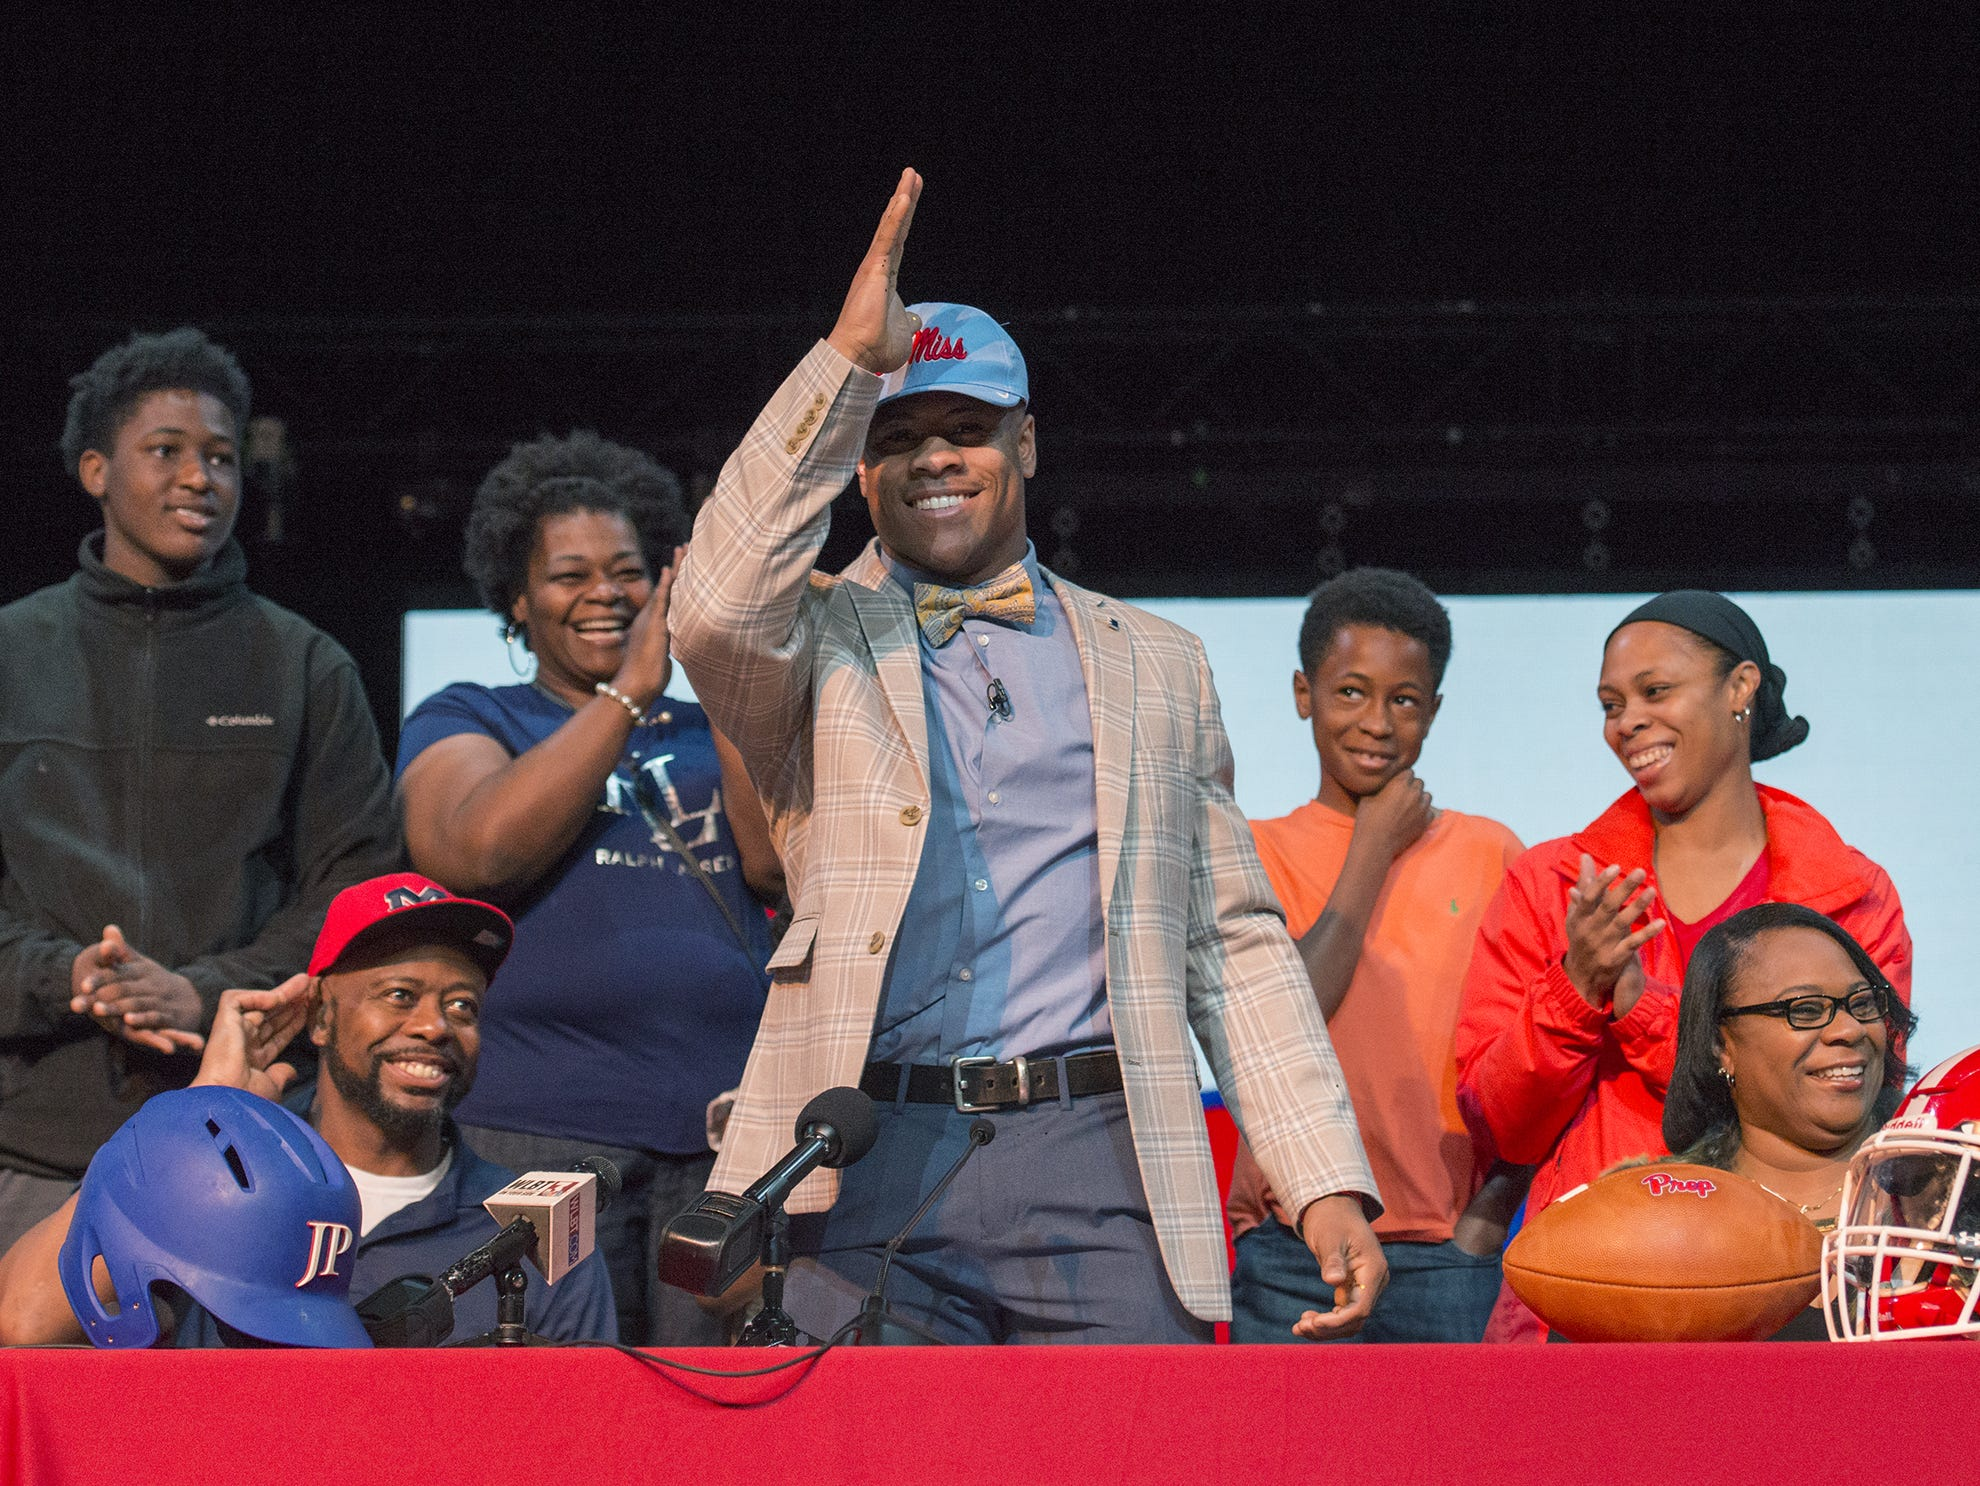 Jackson Prep's 5-star running back and two-sport standout Jerrion Ealy makes a Landshark gesture after signing to play for Ole Miss during National Signing Day at the school Friday, Feb. 6, 2019.